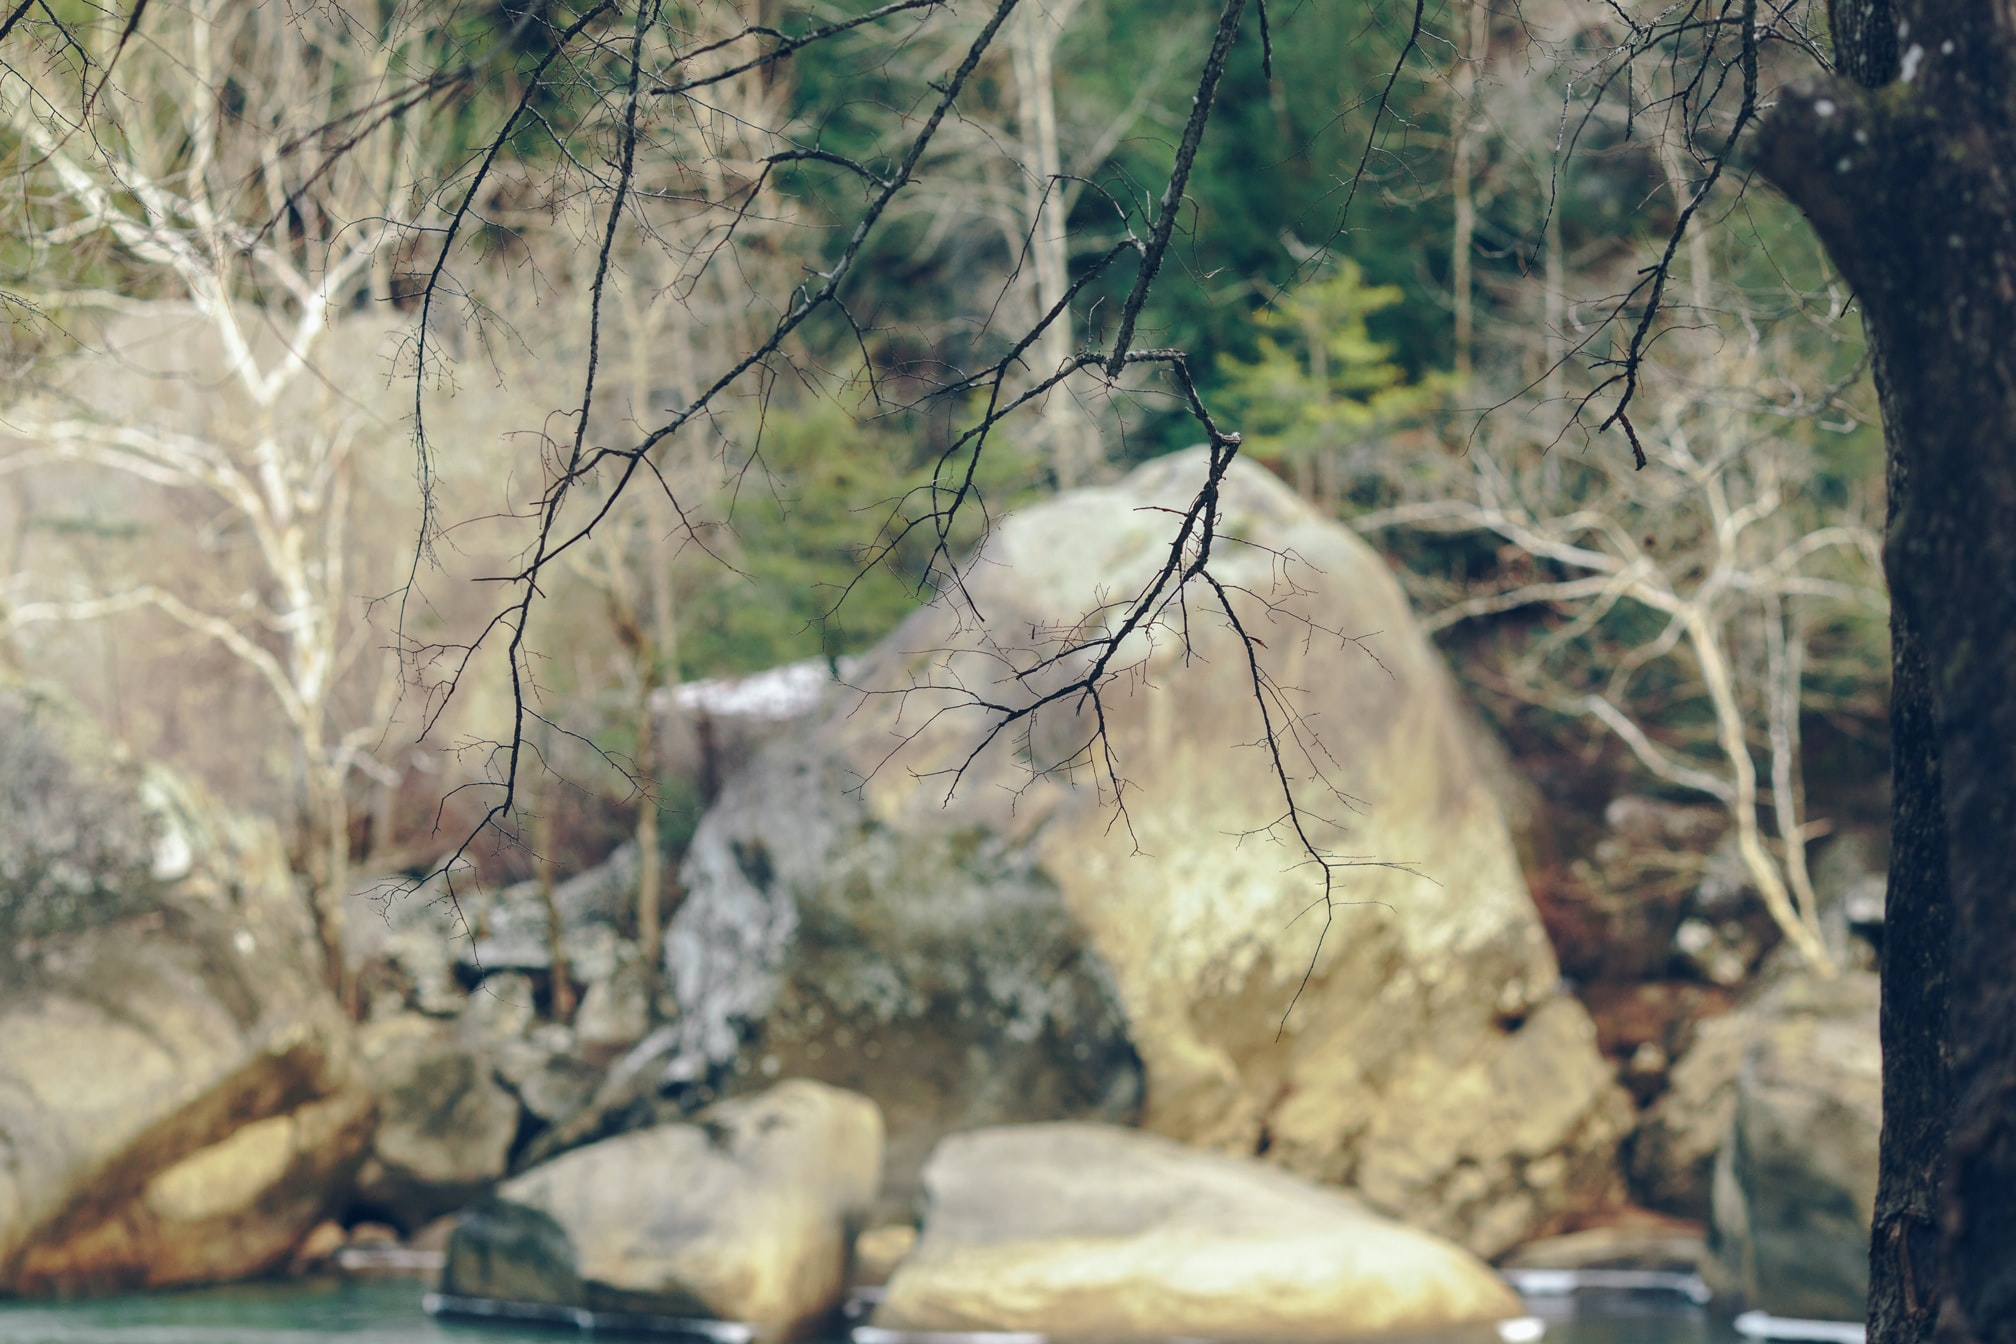 A blurry shot of large rocks at the edge of a forest with bare branches in the foreground